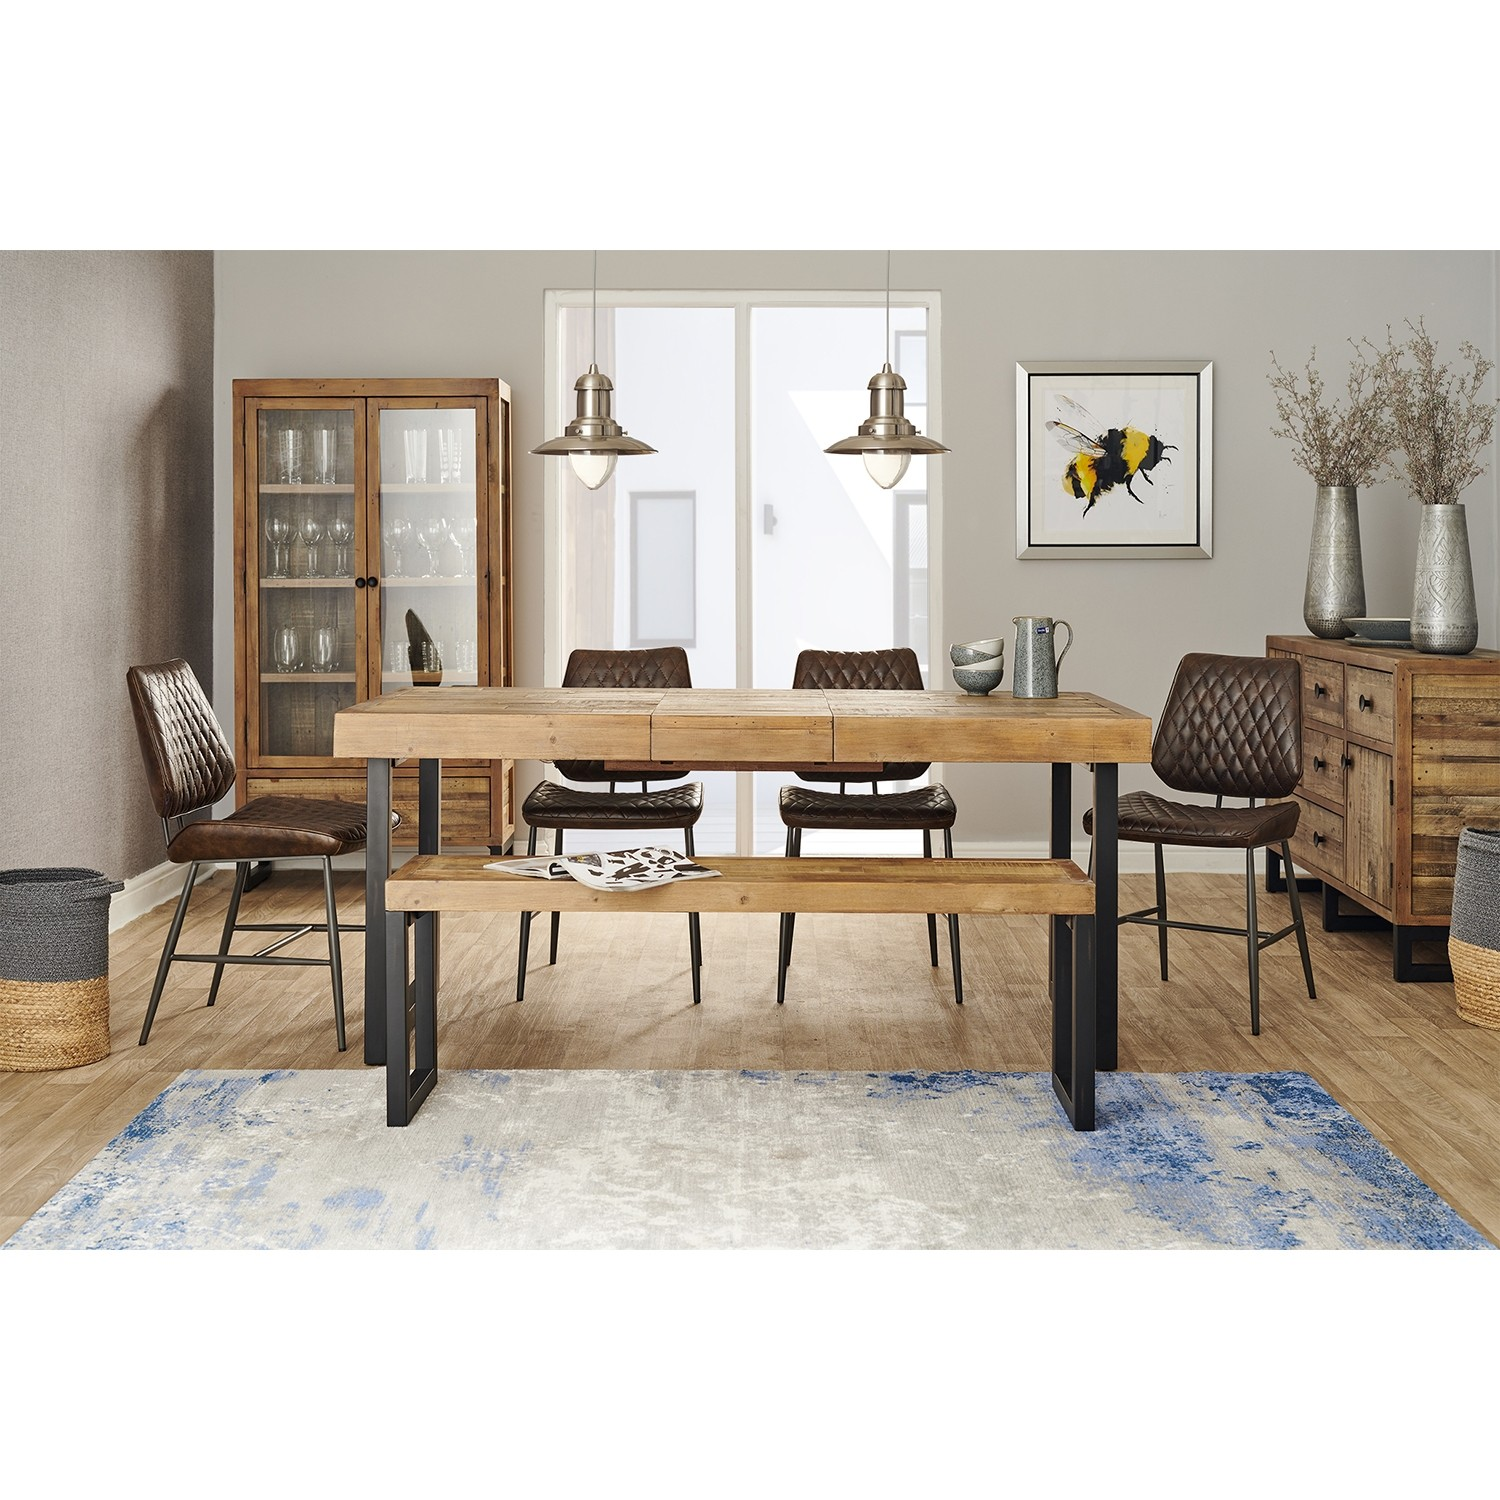 Casa Stockholm Table Bench 4 Chair Dining Set